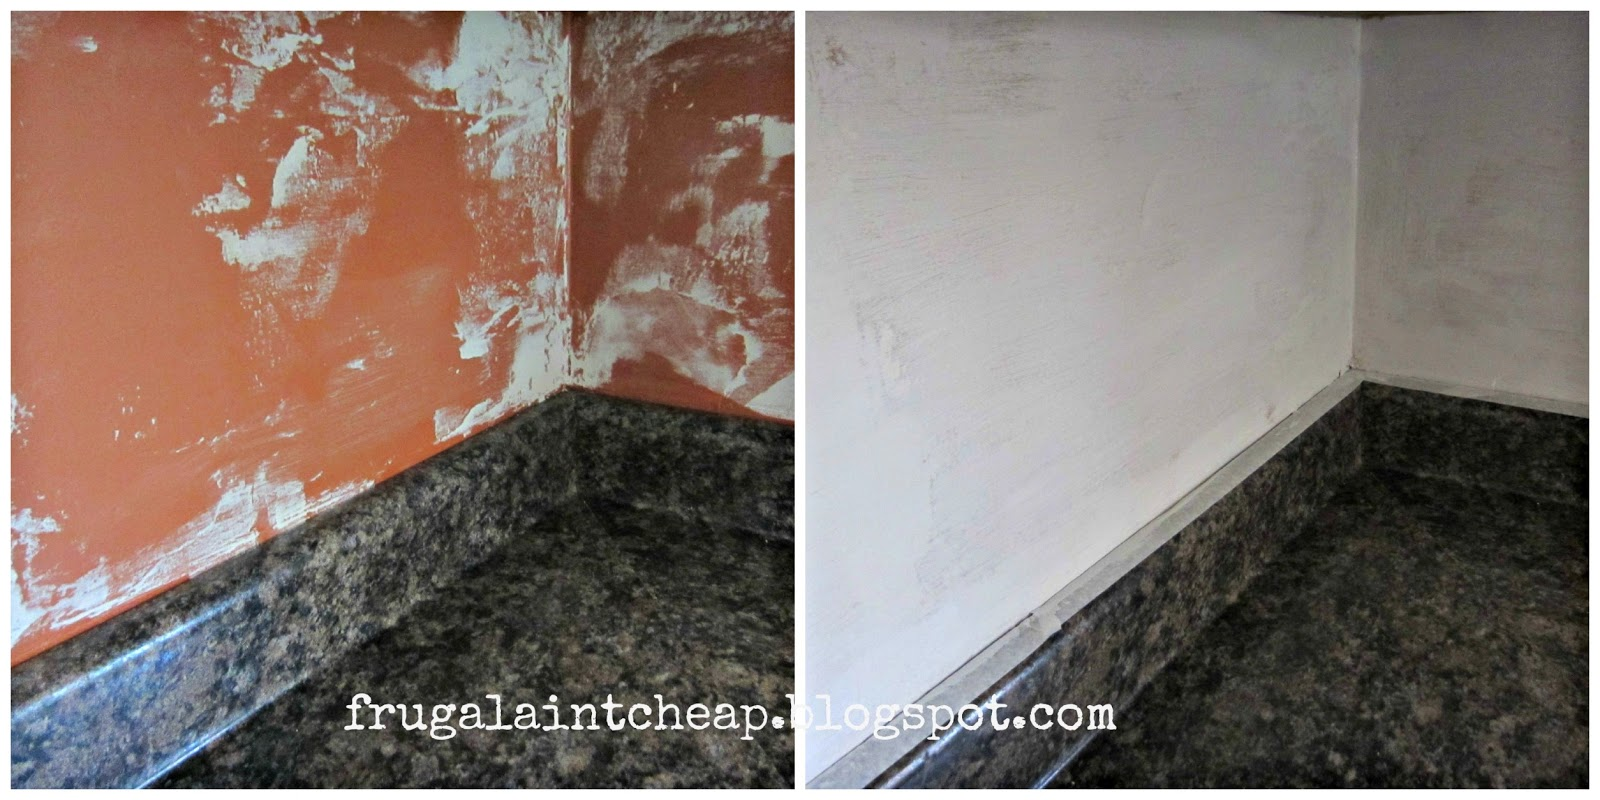 Frugal Aint Cheap Kitchen Backsplash great for renters too 1600x800